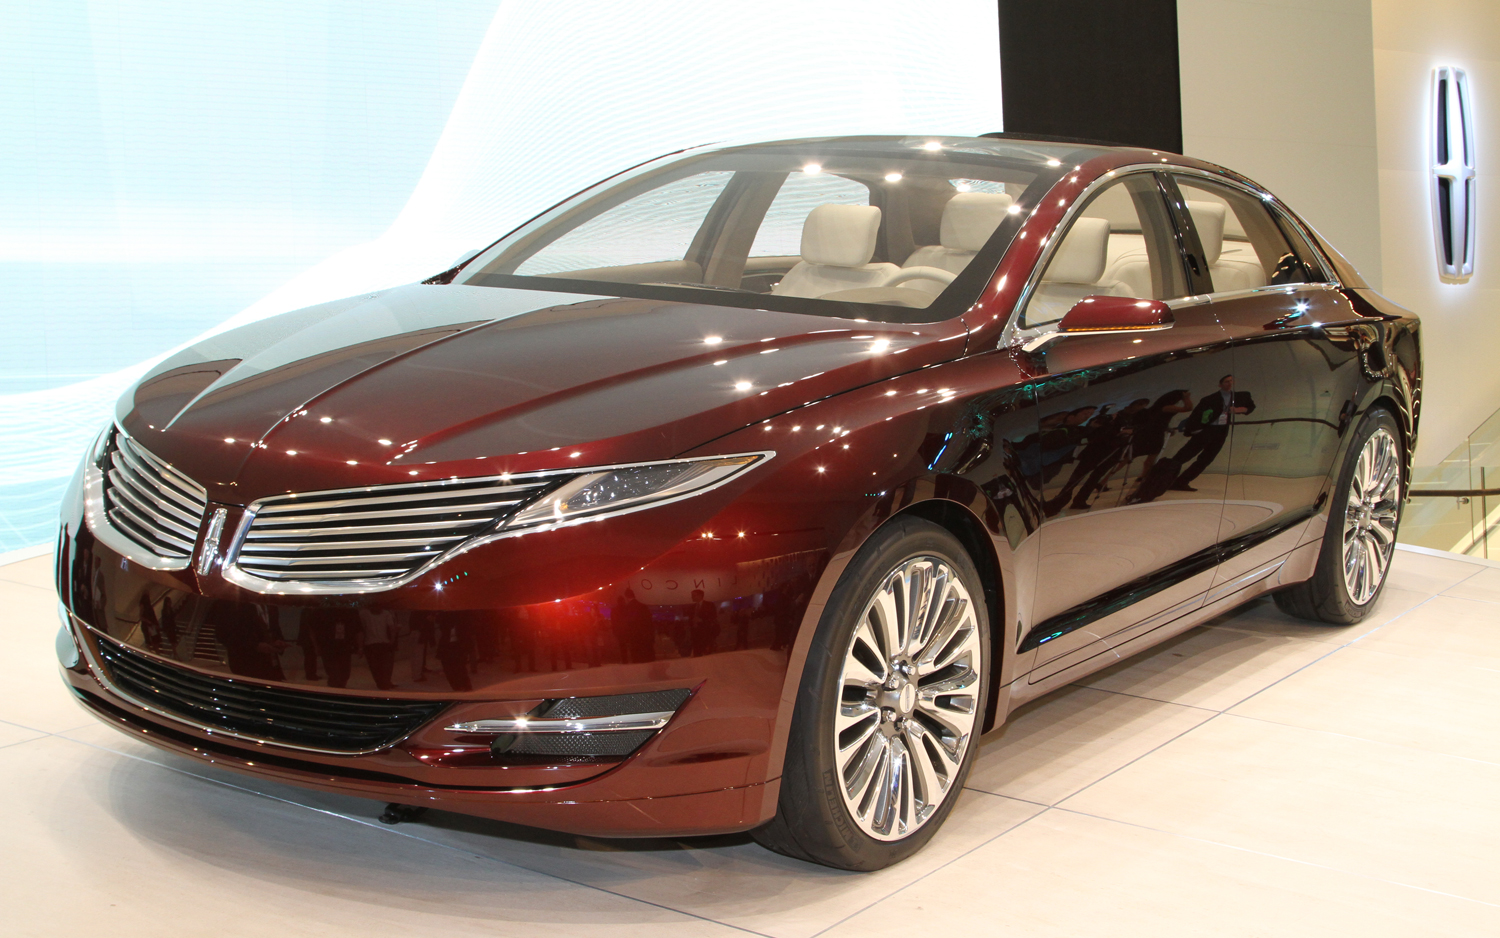 http://auto-database.com/image/lincoln-mkz-images-13319.jpg